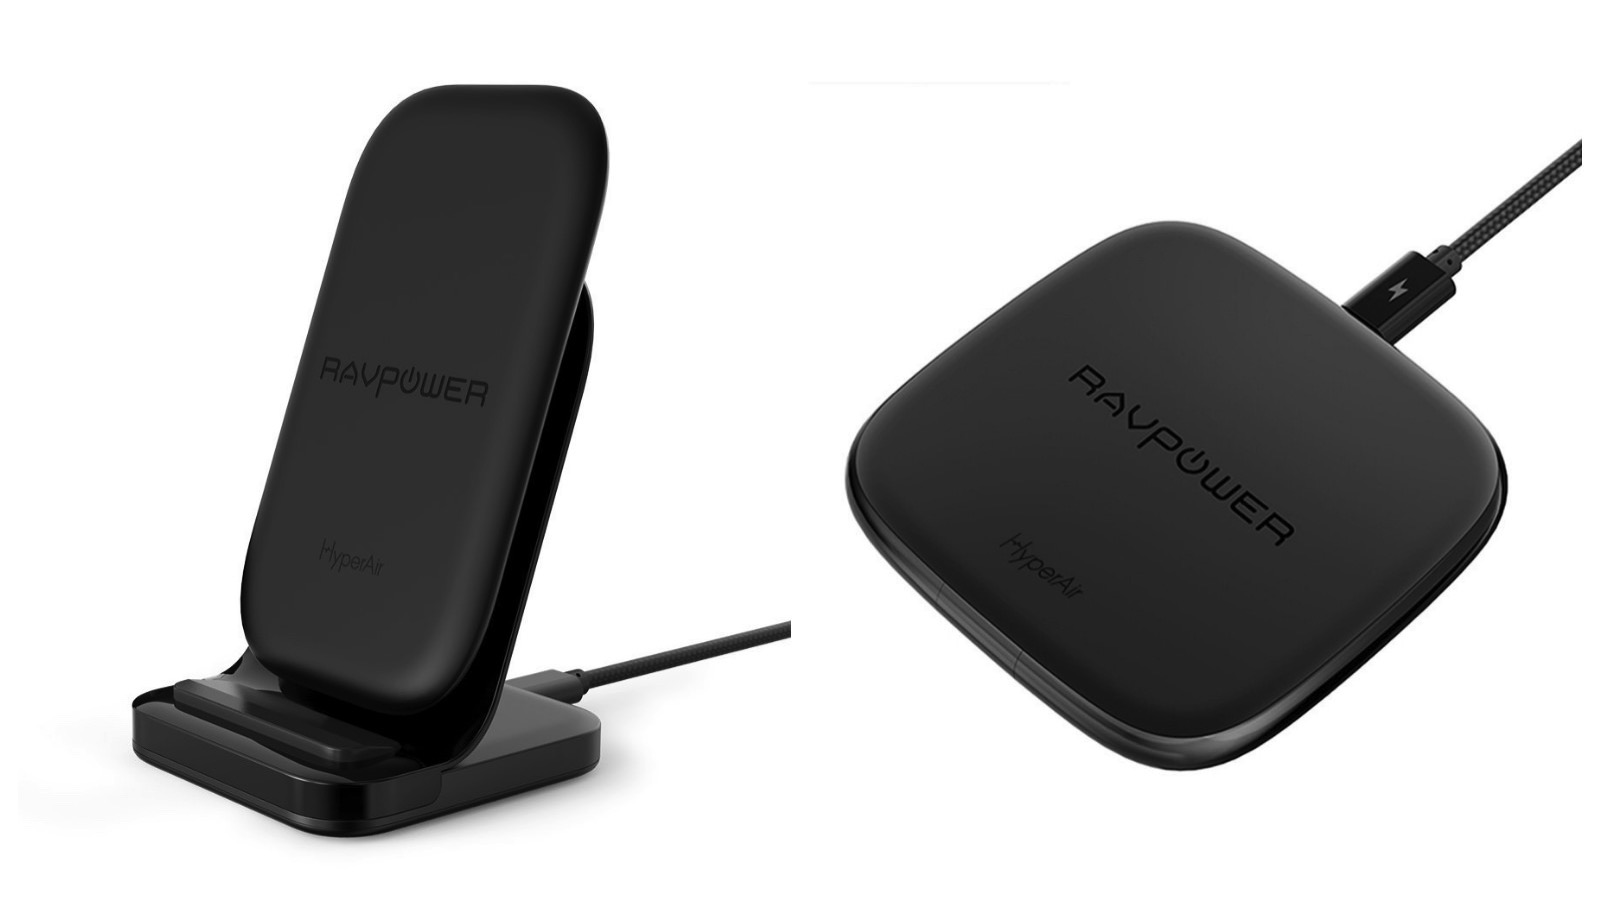 RAVPower-Wireless-Chargers.jpg